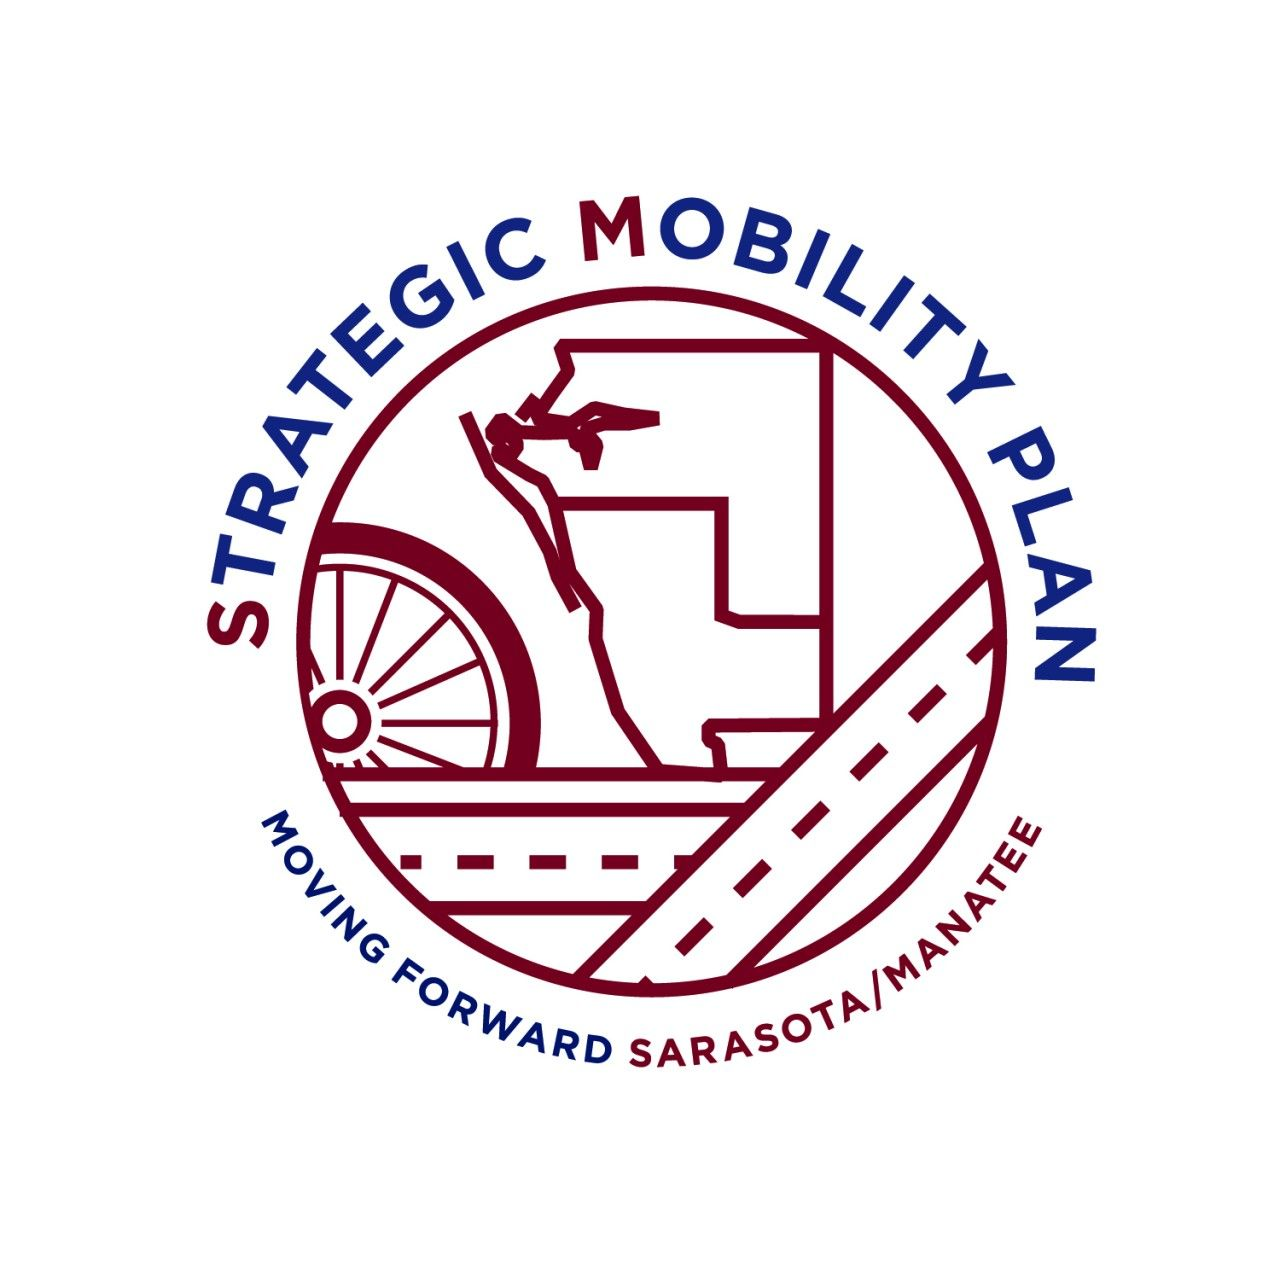 .....Developing the Sarasota/Manatee MPO's Strategic Mobility Plan (formerly known as '2040 Long Range Transportation Plan')